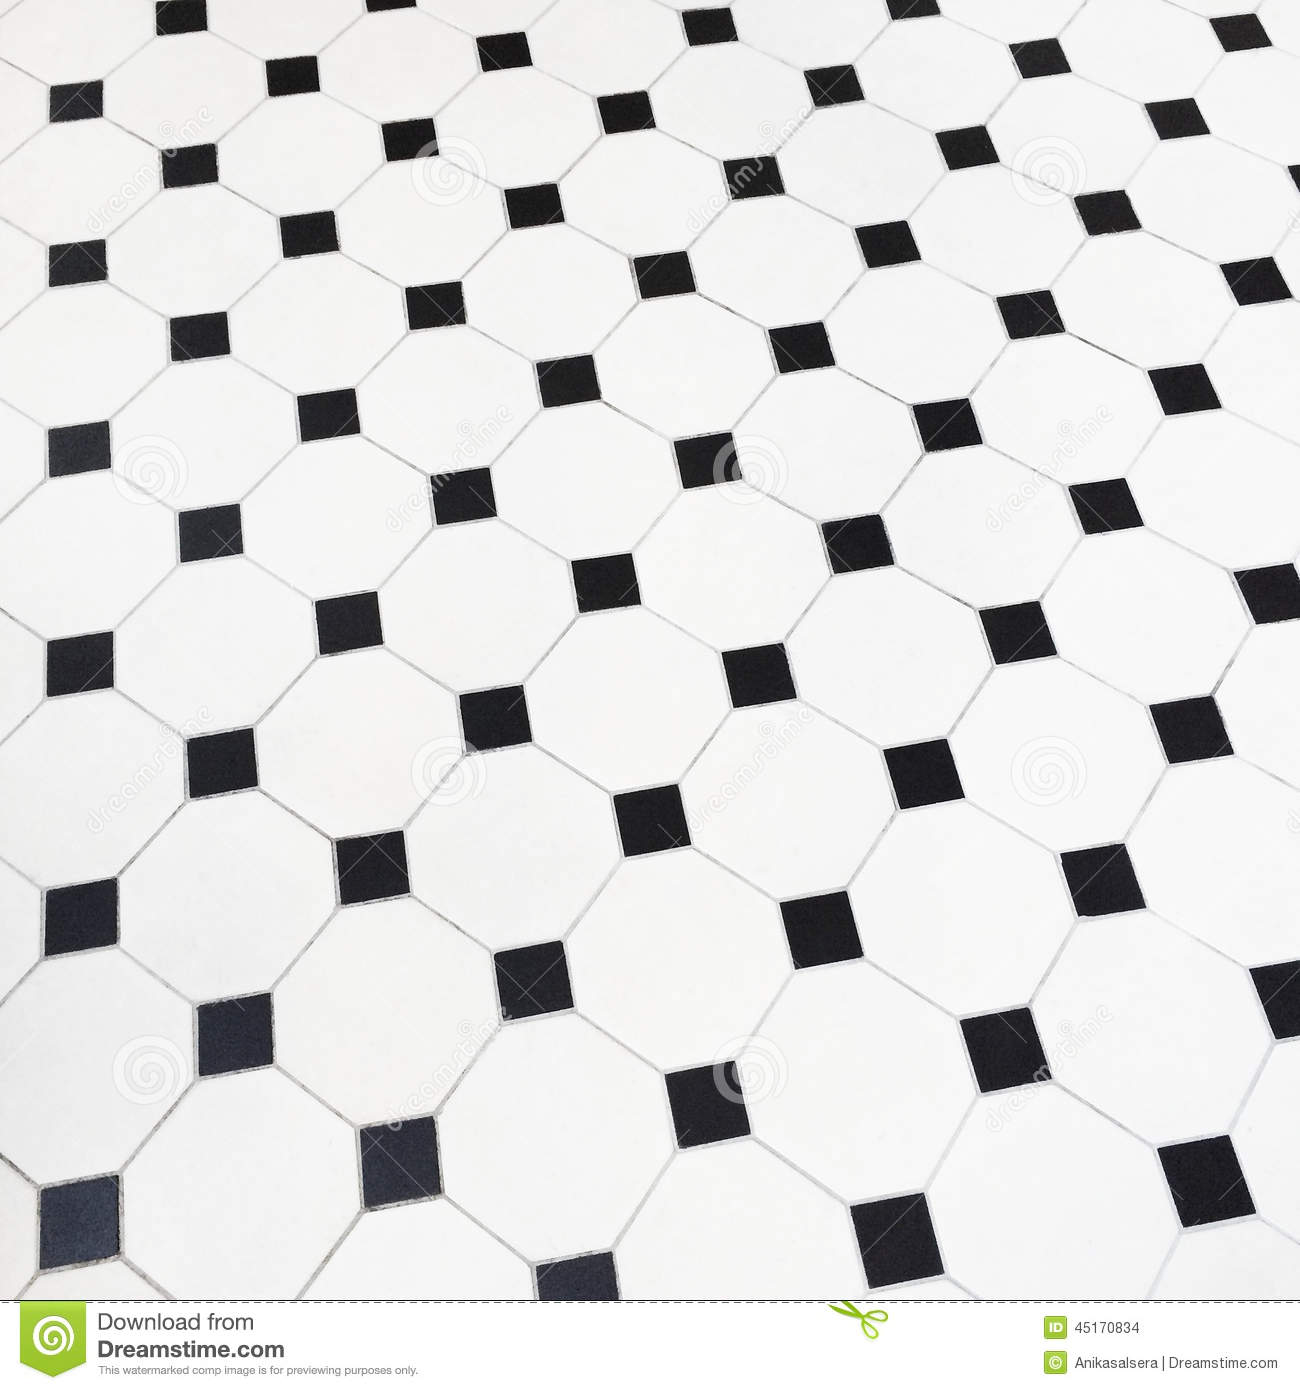 black and white floor tile. Black And White Ceramic Tiles Floor Stock Photo  Image Of Diagonal Pattern 45170834